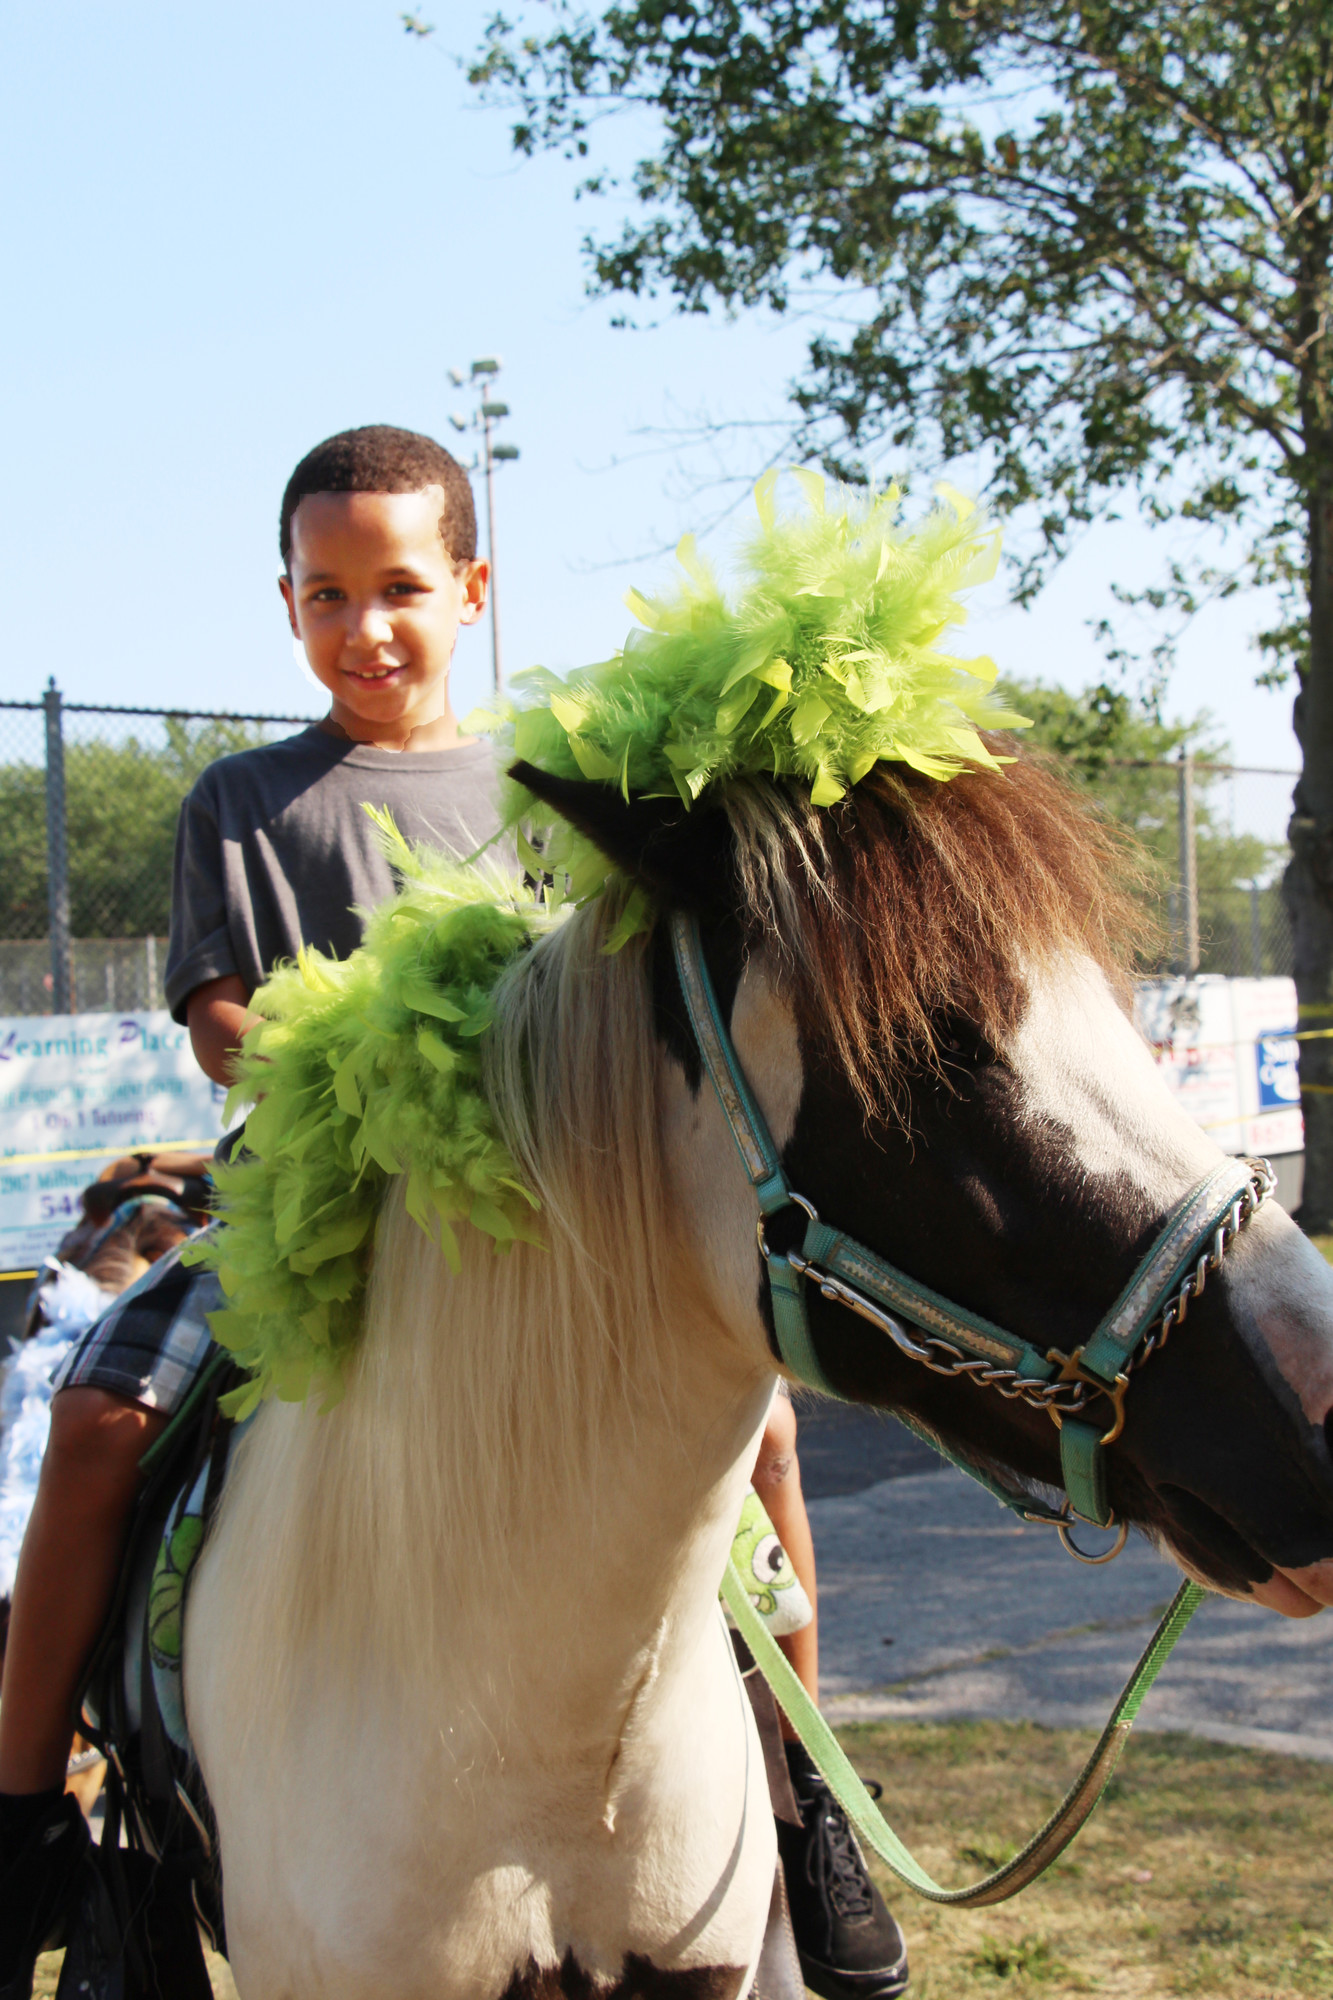 Kyree Pruce, 7, took a ride on a  pony around the park.